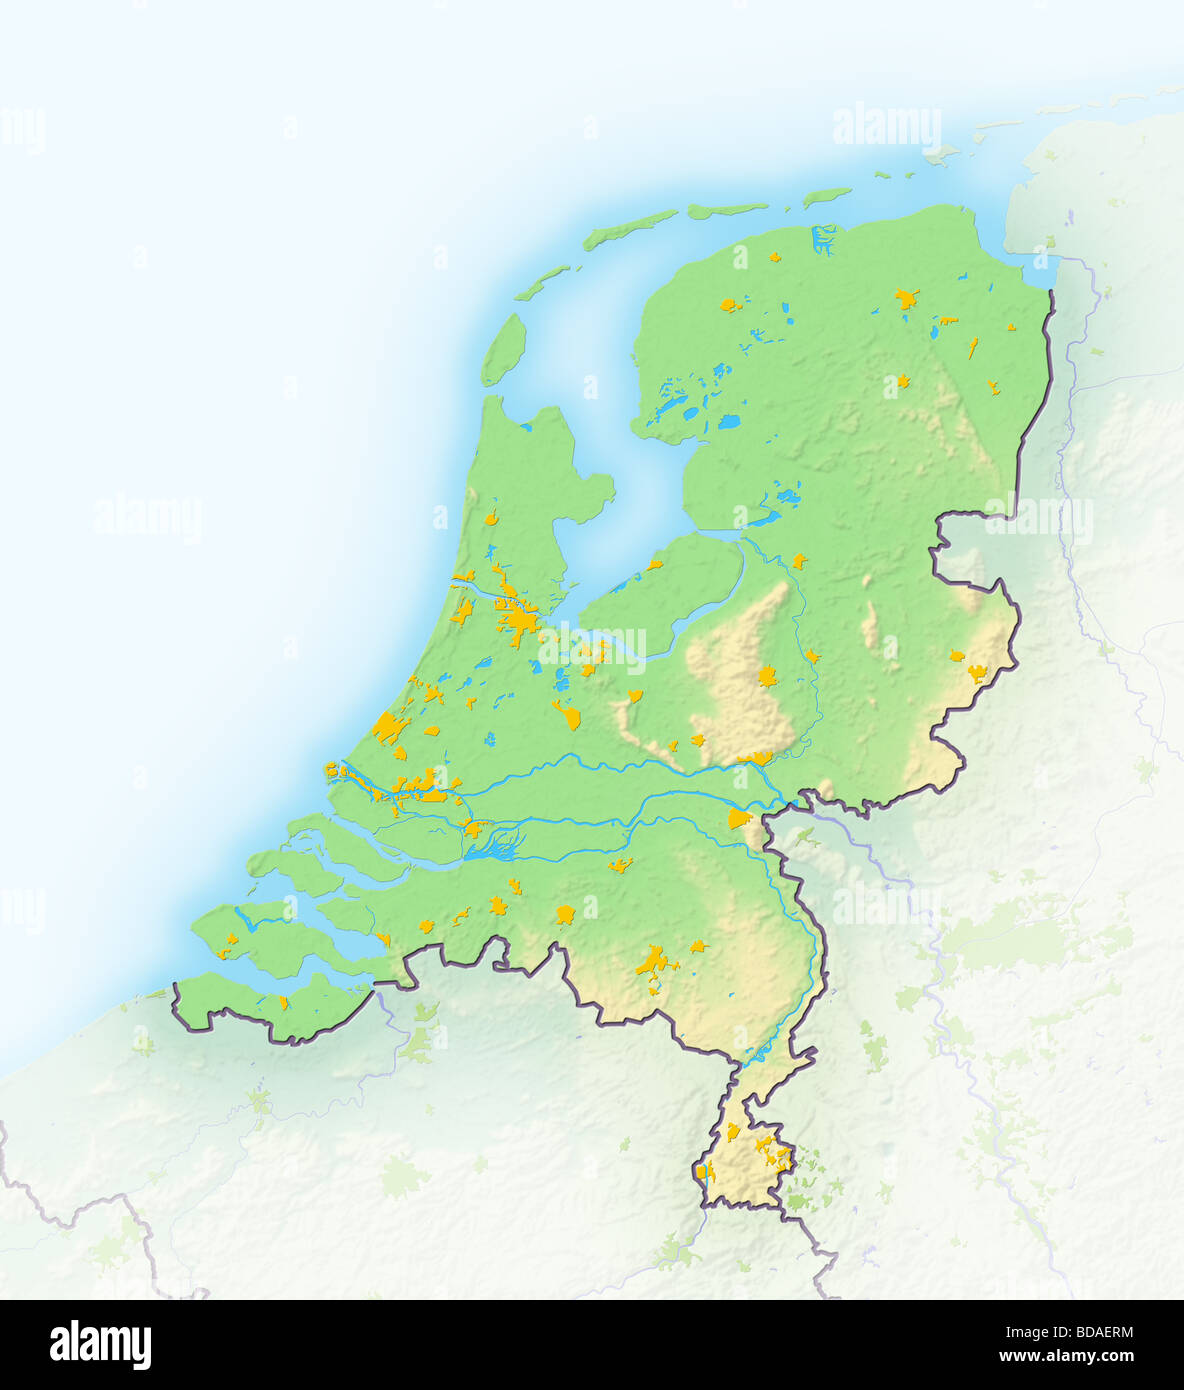 Netherlands Topographic Map.Netherlands Shaded Relief Map Stock Photo 25432056 Alamy